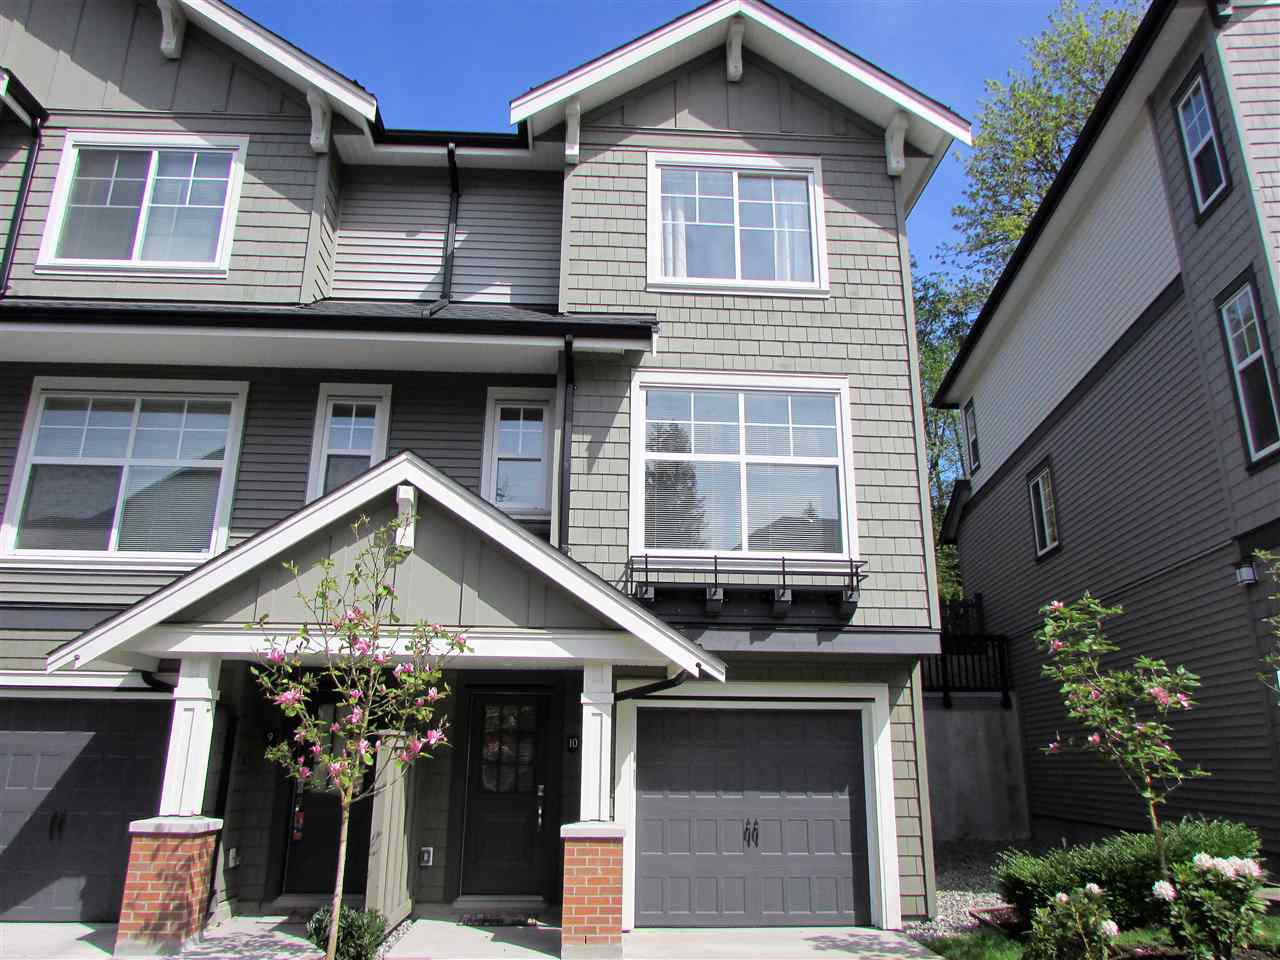 """Main Photo: 10 3470 HIGHLAND Drive in Coquitlam: Burke Mountain Townhouse for sale in """"BRIDLEWOOD"""" : MLS®# R2164105"""